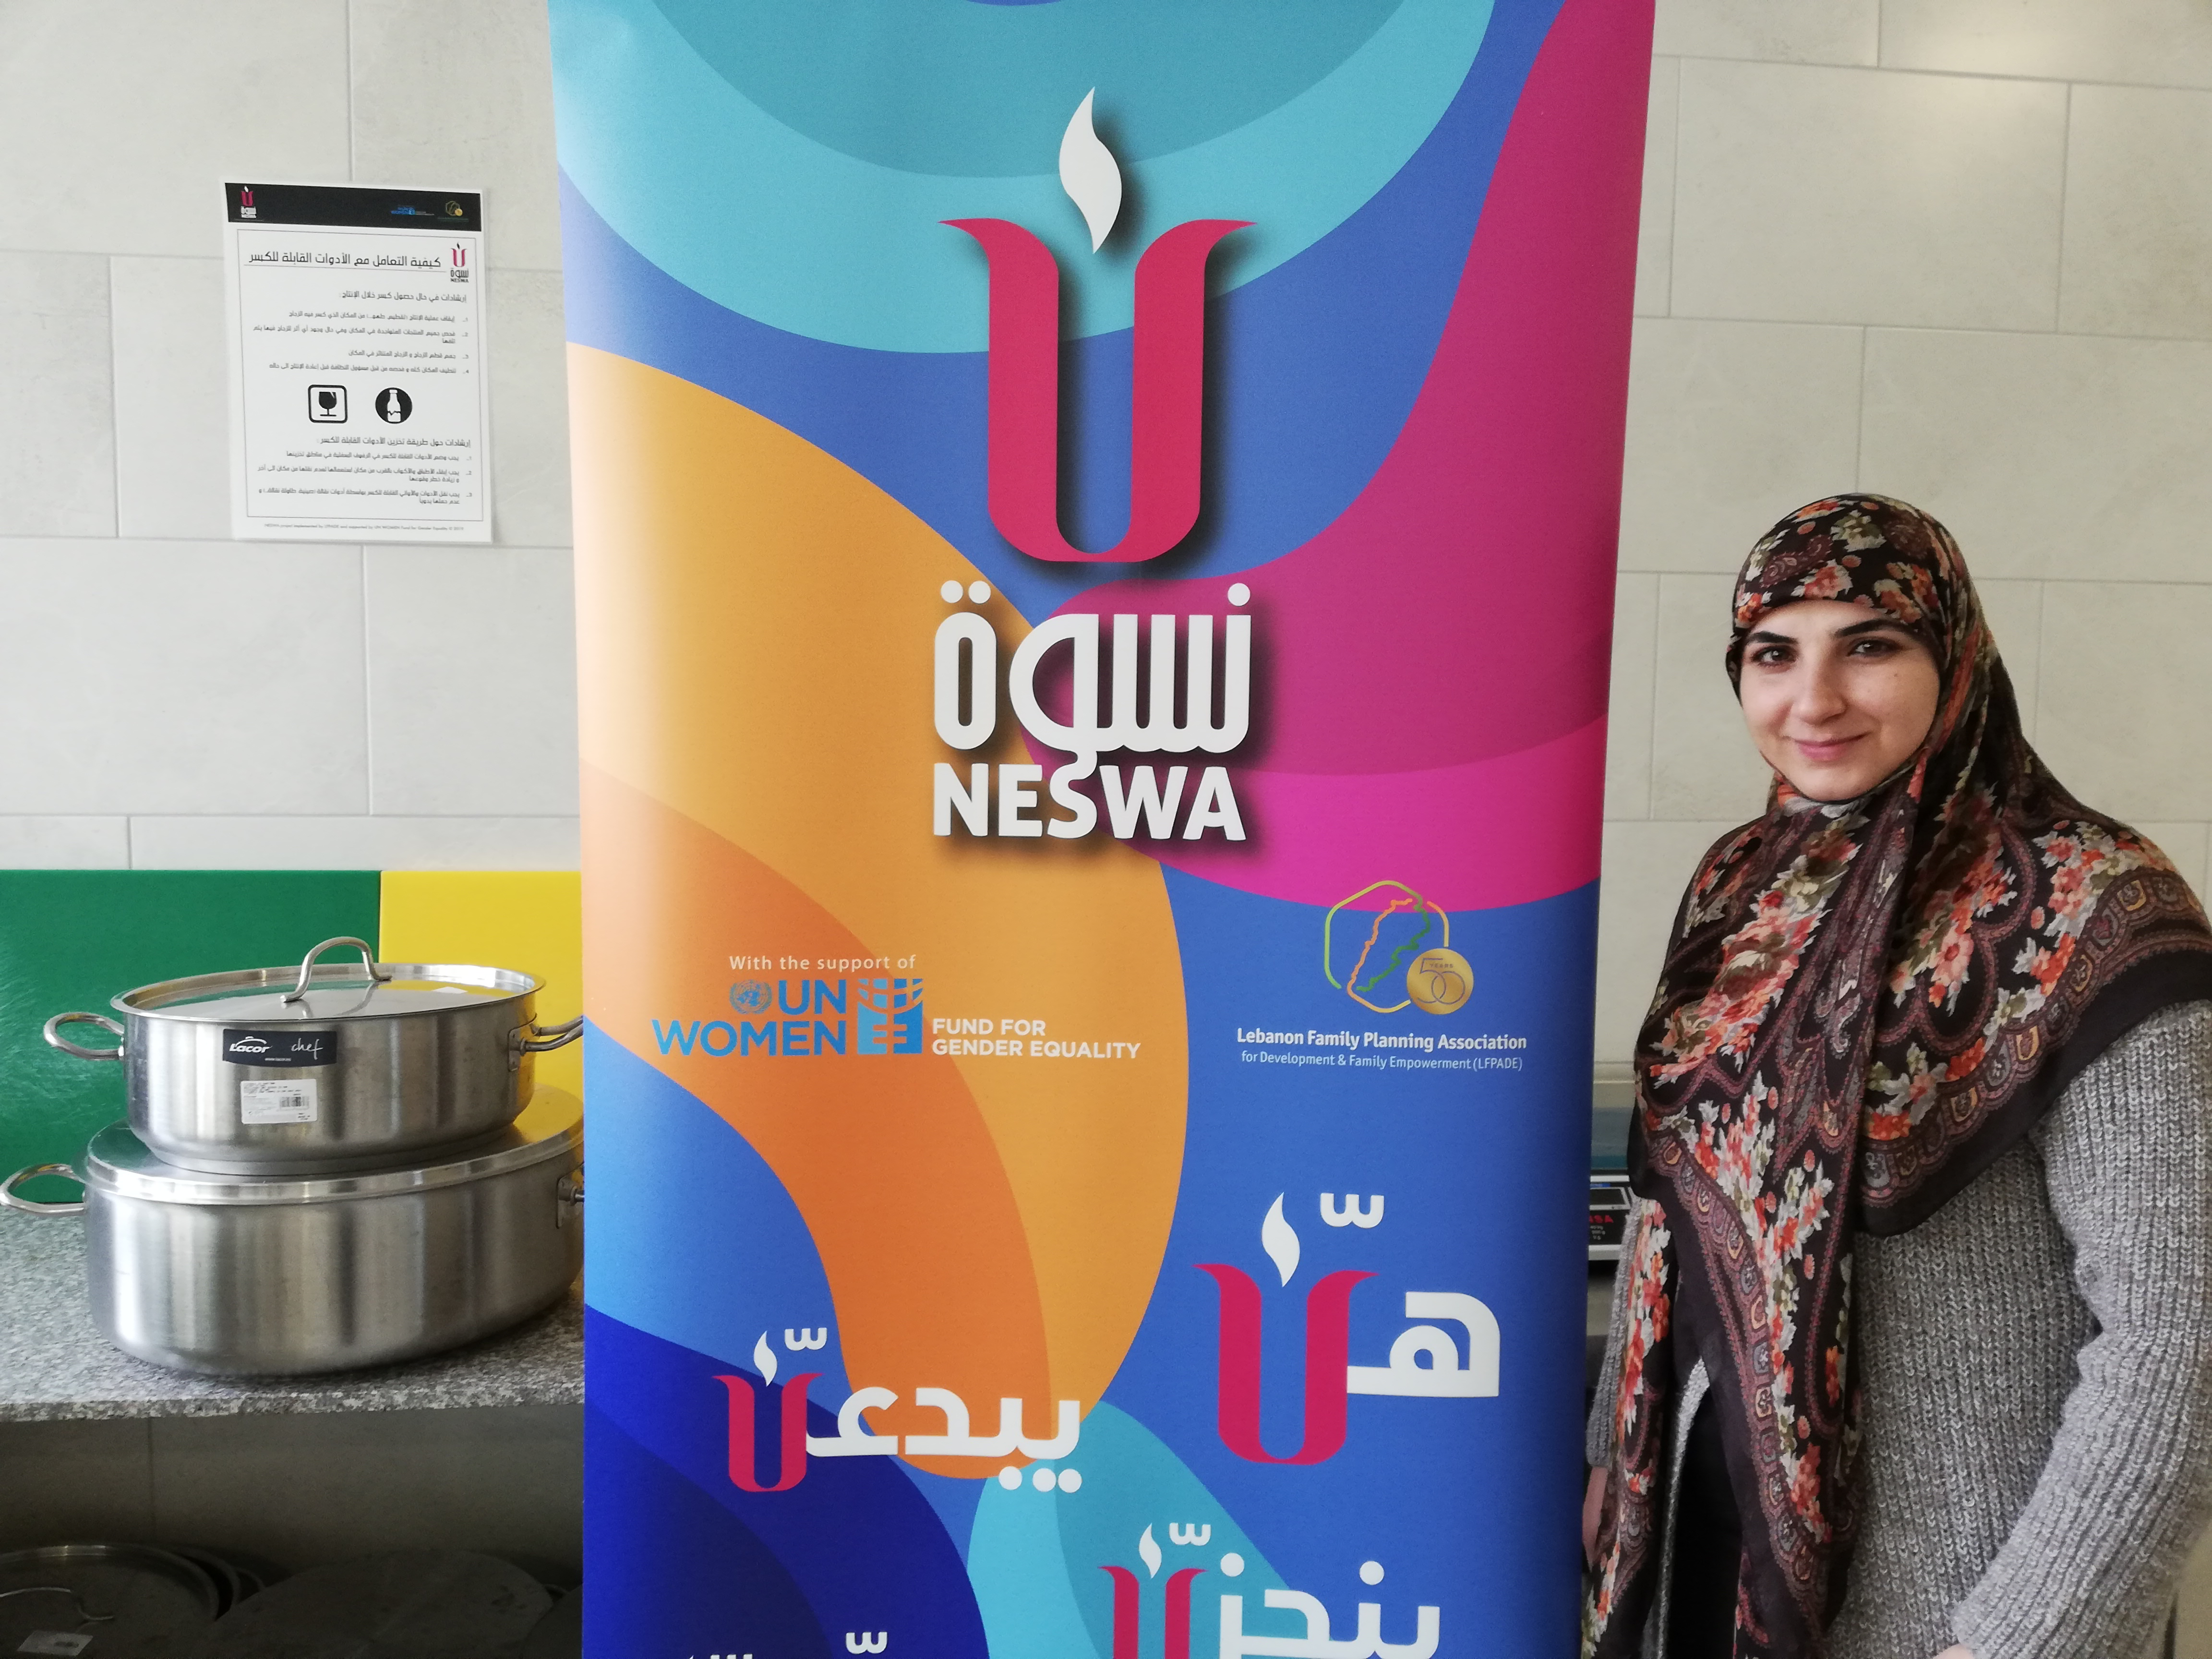 In South Lebanon, Maryam Dhaini is committed to turn NESWA into a successful and competitive women agri-food line